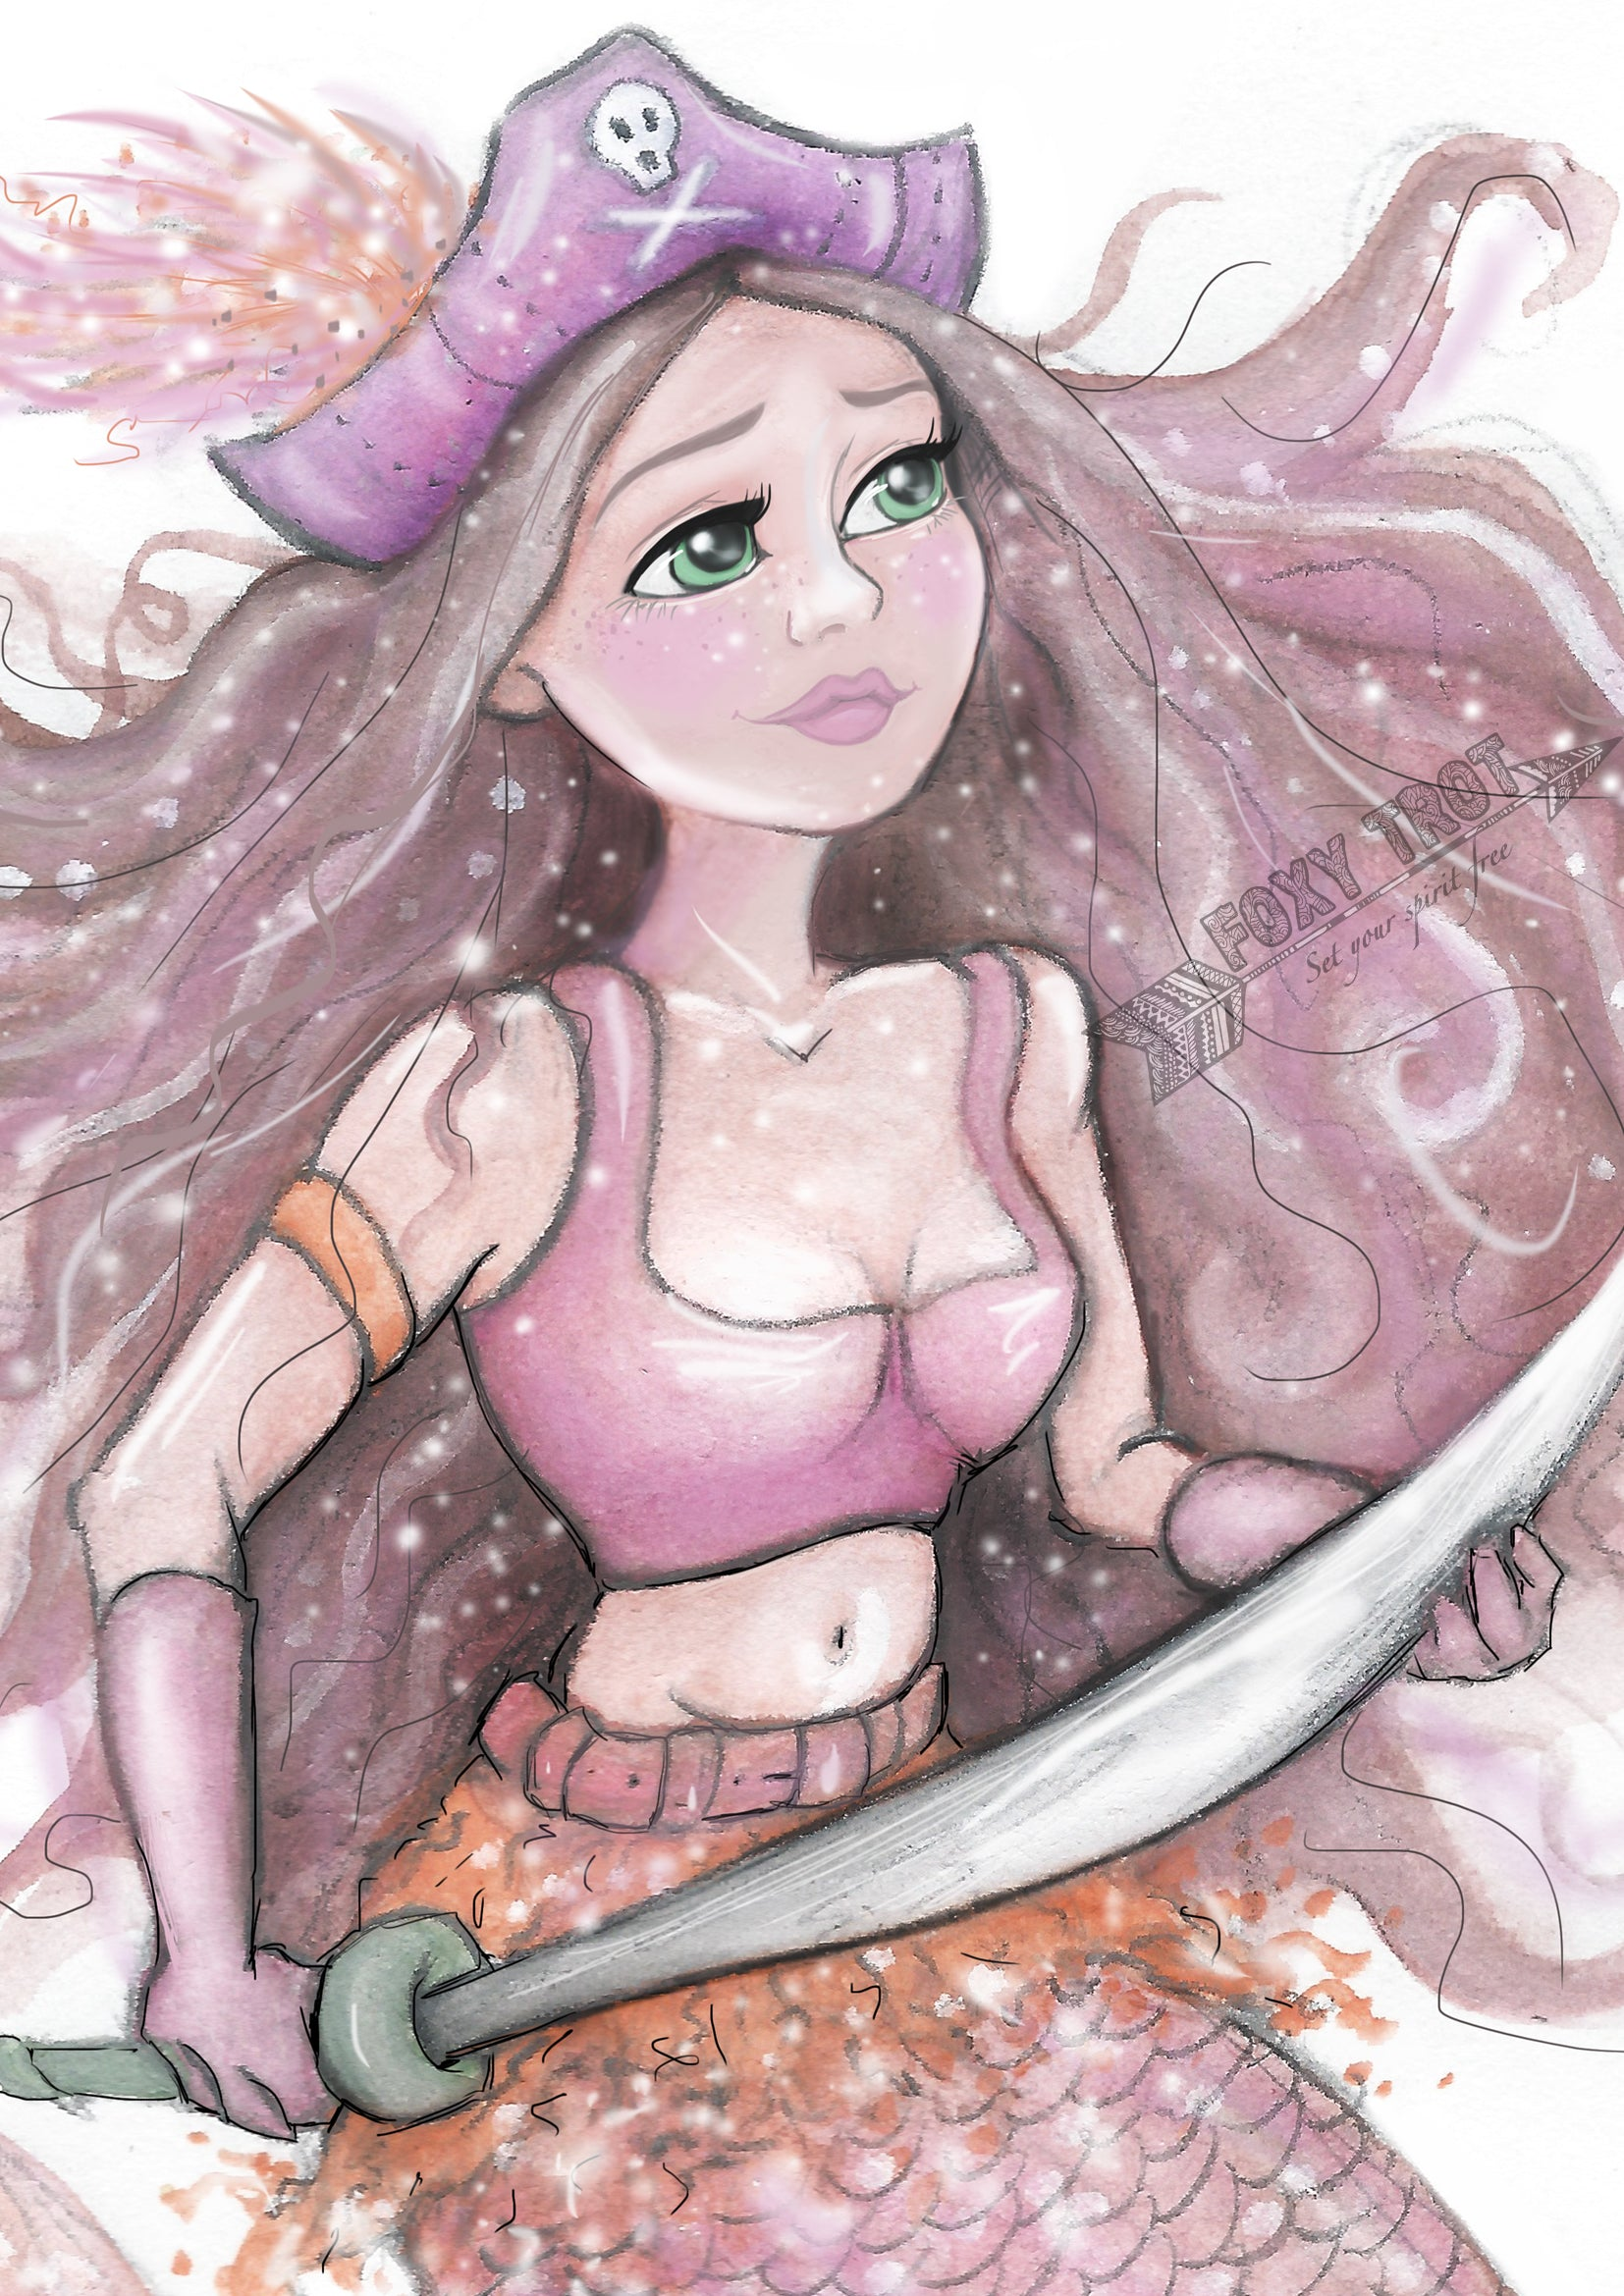 Pirate Phoebe The Mermaid